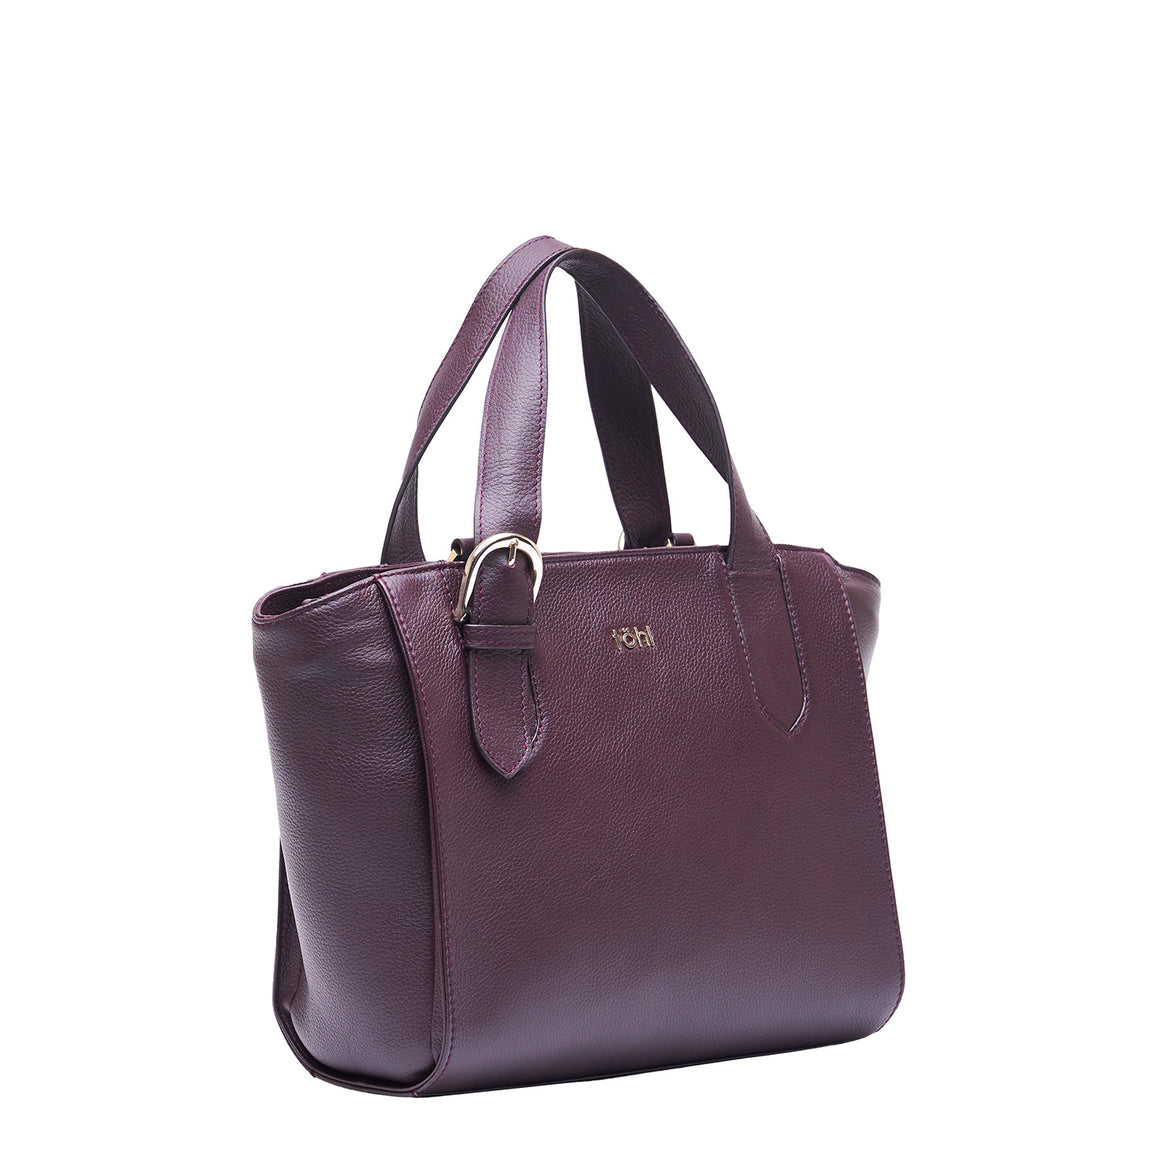 HH 0020 - TOHL LOMBARD WOMEN'S HAND BAG - PLUM